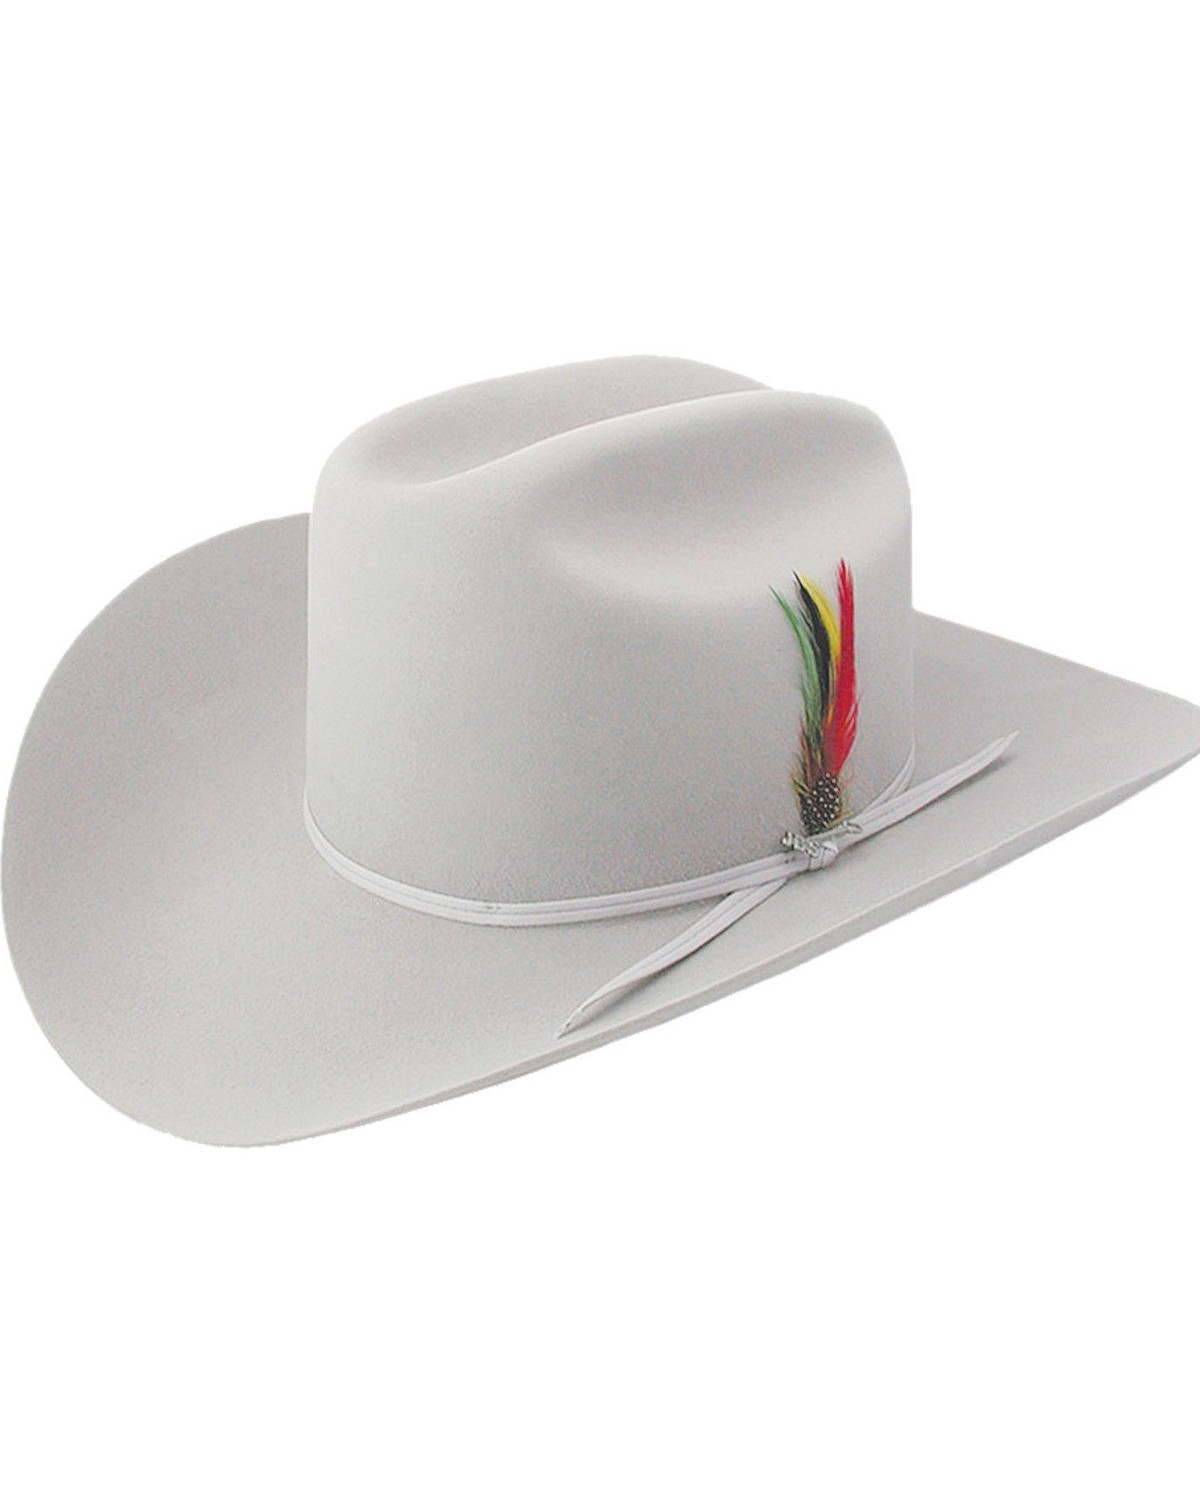 adalatblog.ml carries the biggest selection of Cowboy Hats and Cowgirl Hats around. Sheplers offers thousands of affordable choices of Felt Hats, Straw Hats, Crushable Hats, Outback Hats.